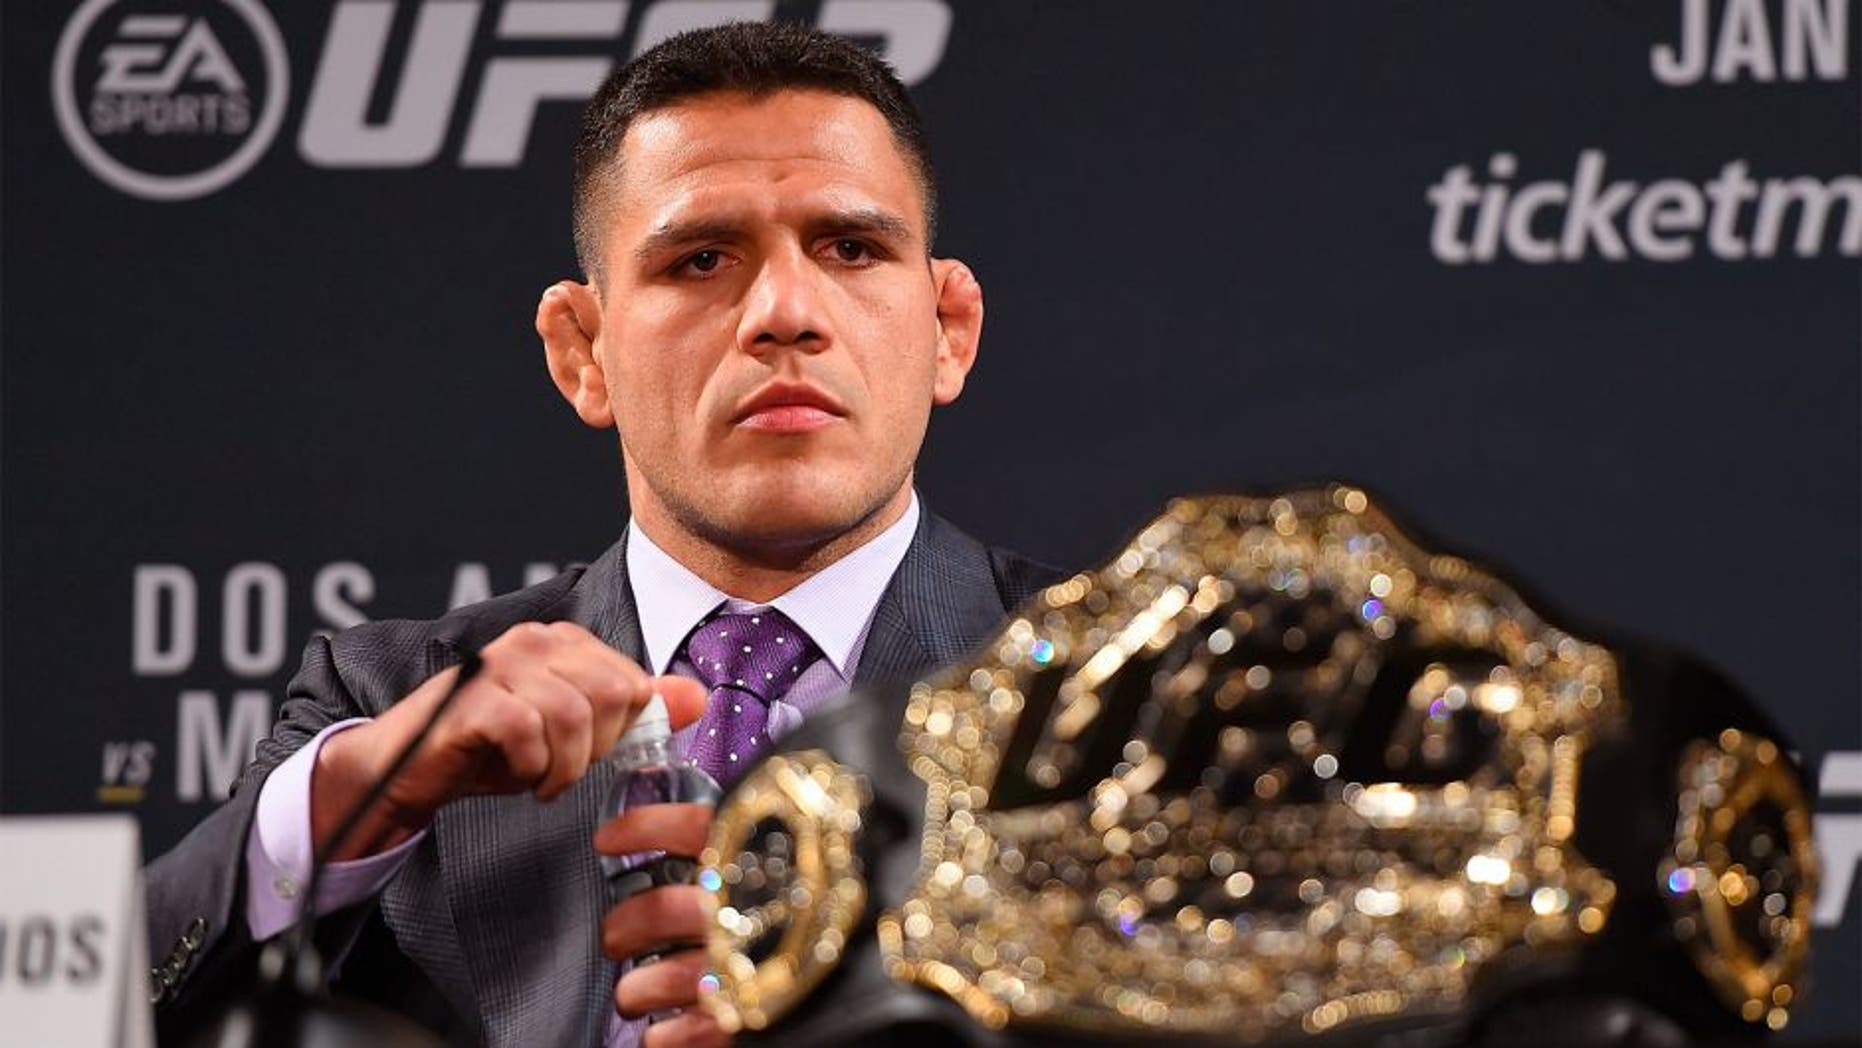 LAS VEGAS, NV - JANUARY 20: UFC lightweight champion Rafael dos Anjos of Brazil interacts with media during the UFC 197 on-sale press conference event inside MGM Grand Hotel & Casino on January 20, 2016 in Las Vegas, Nevada. (Photo by Jeff Bottari/Zuffa LLC/Zuffa LLC via Getty Images)